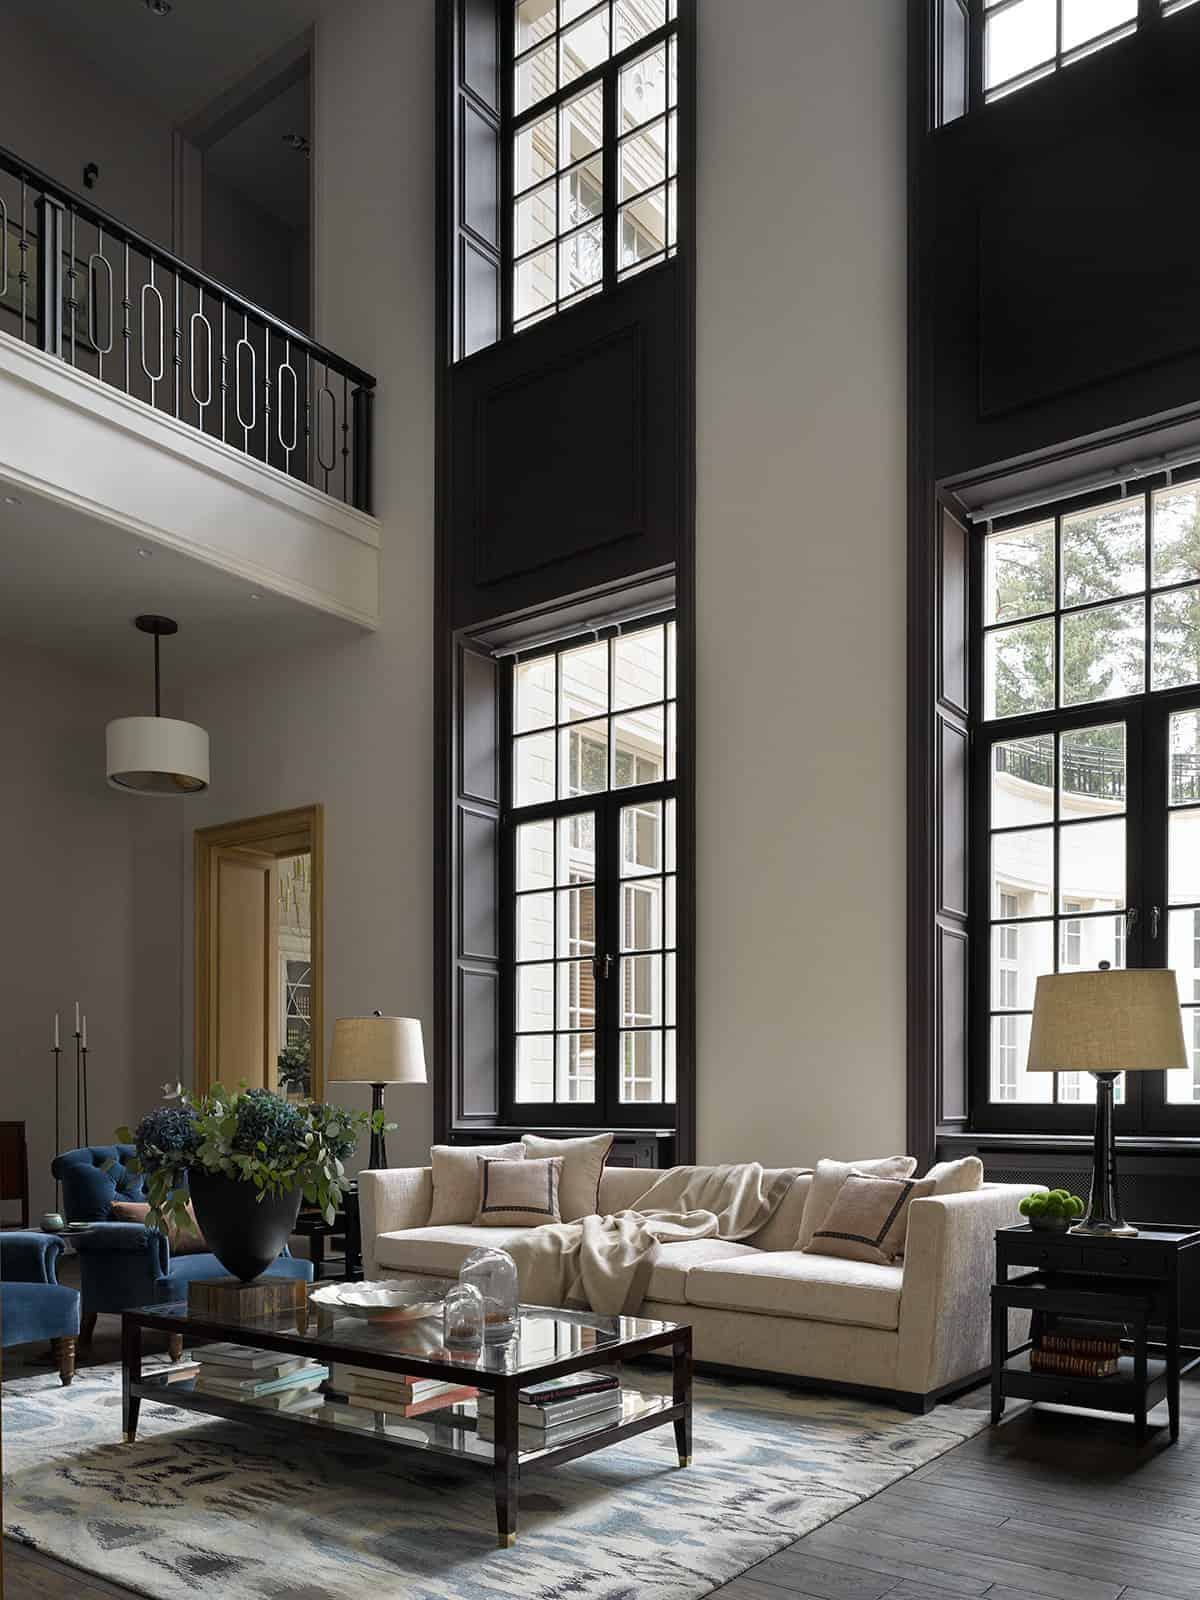 The beige sofa is illuminated by the tall windows that have a dark wooden finish and frame that match the dark side tables and coffee table over the light-hued area rug.